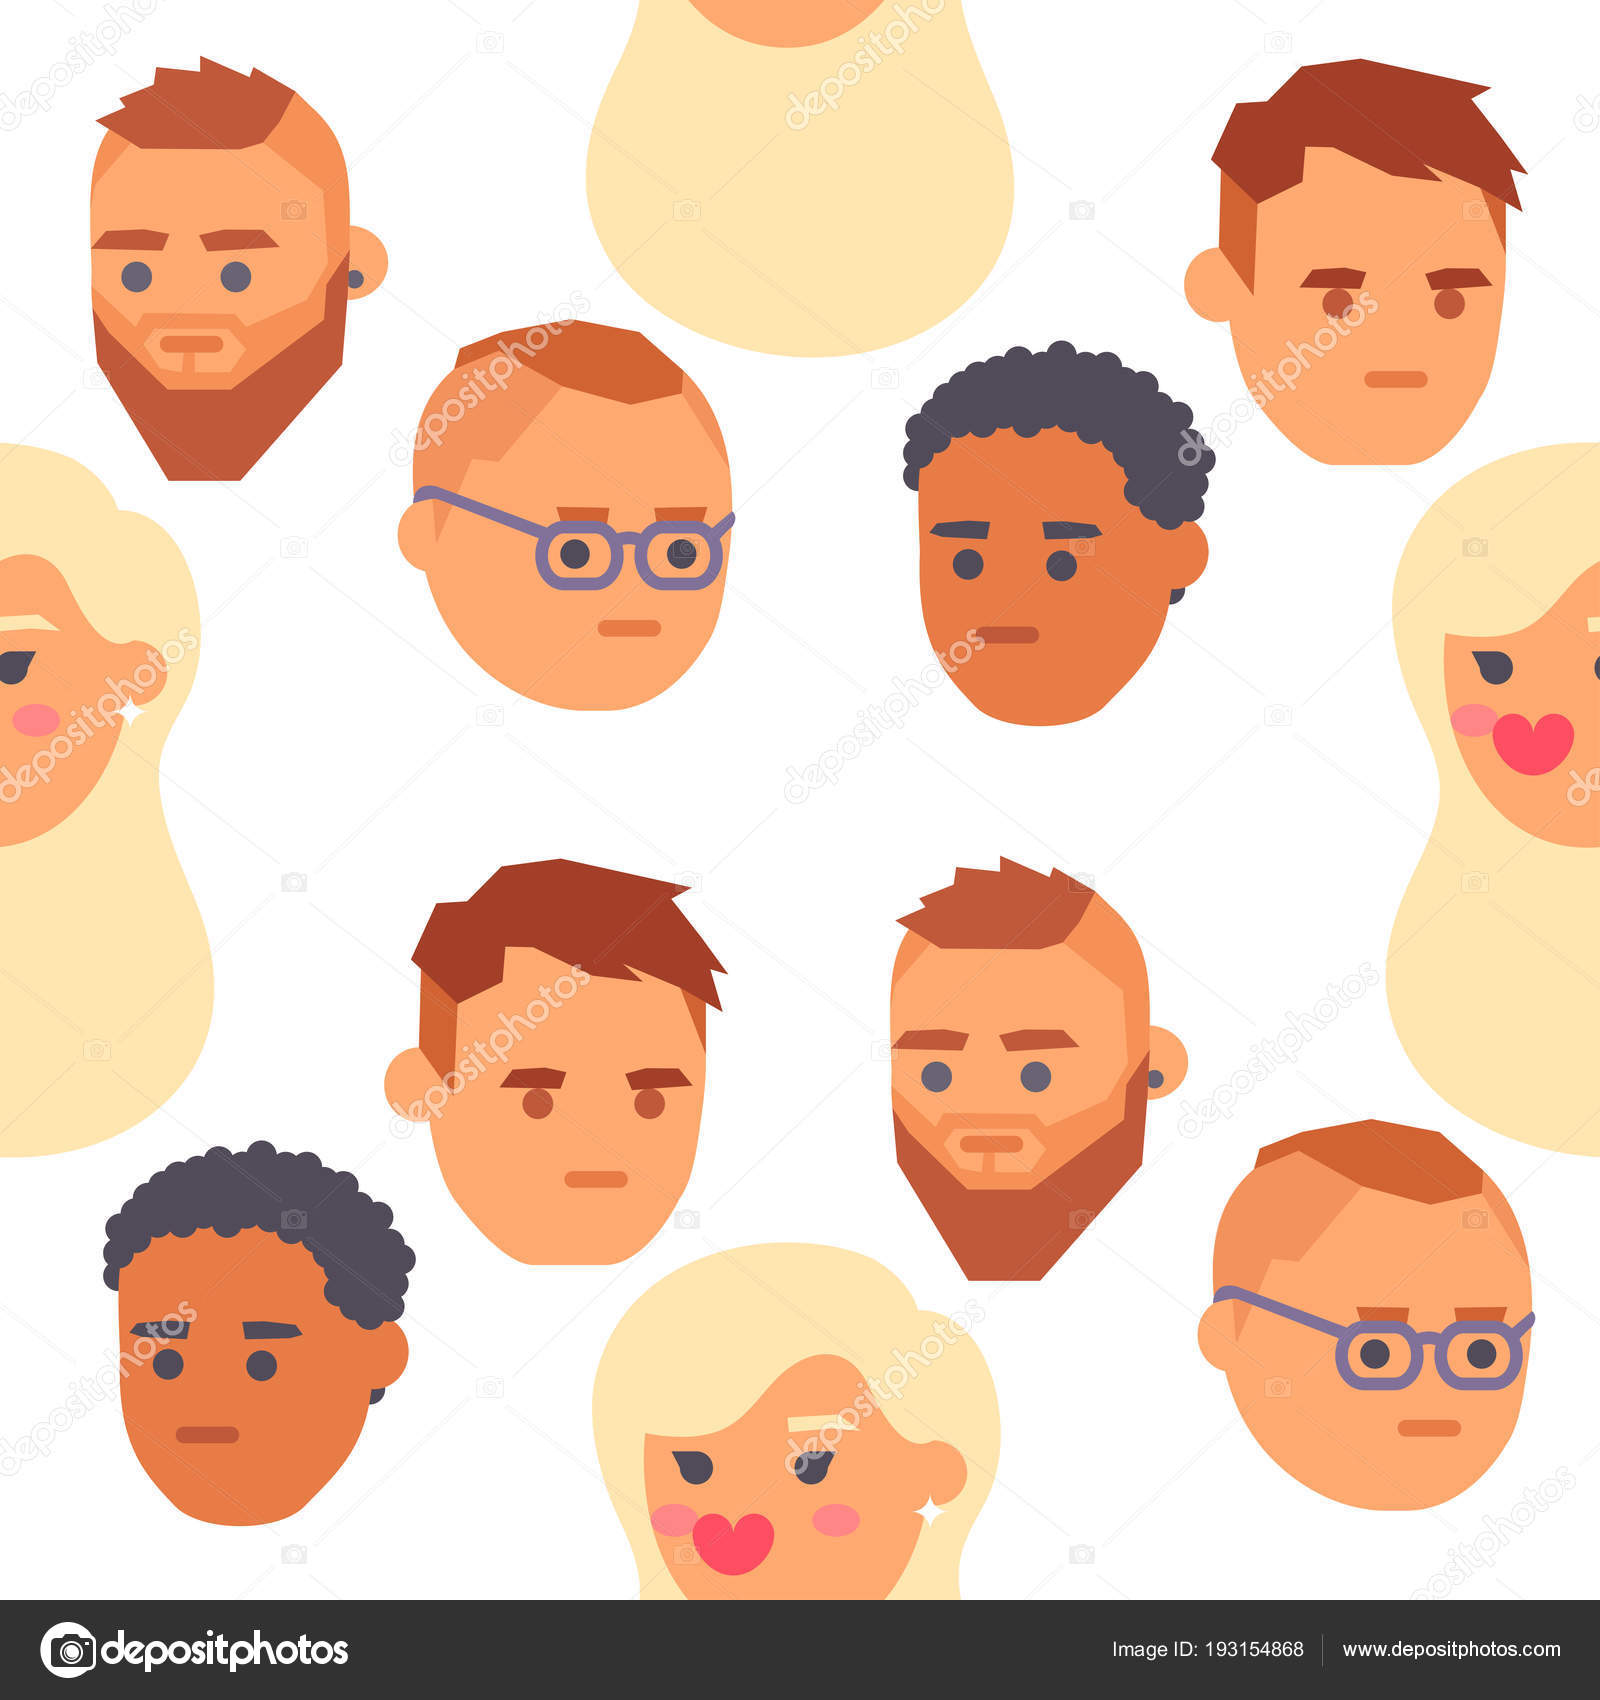 Worksheets Emotion Faces eemotion vector people faces cartoon emotions avatar illustration girl emotion woman emoji face icons and cute symbols happy